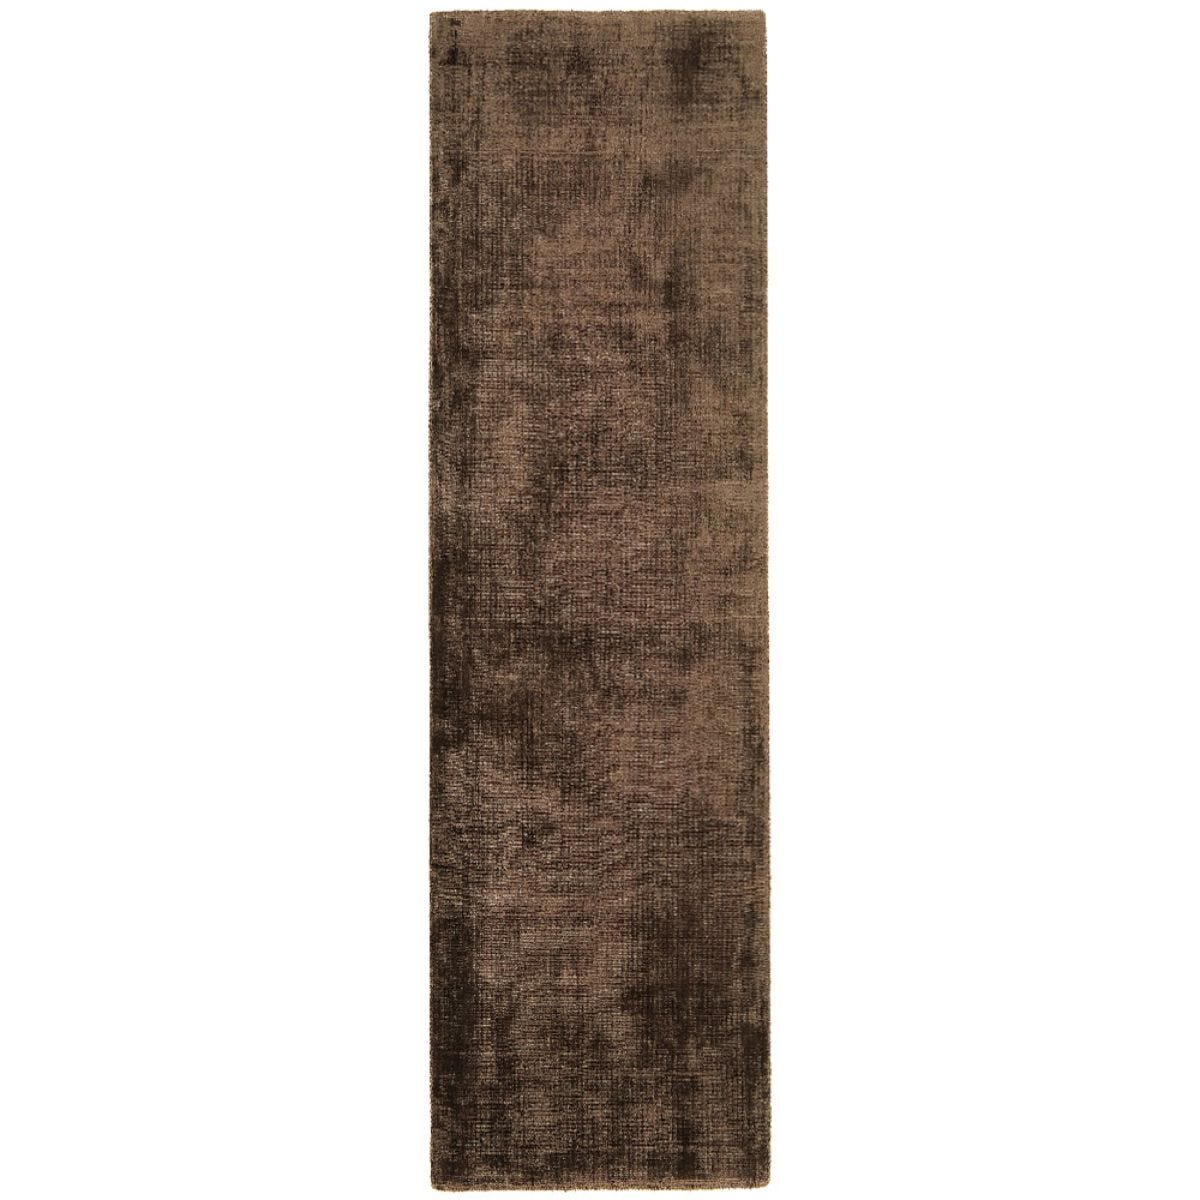 Asiatic Blade Runner Floor Rug, 66 x 240cm - Chocolate